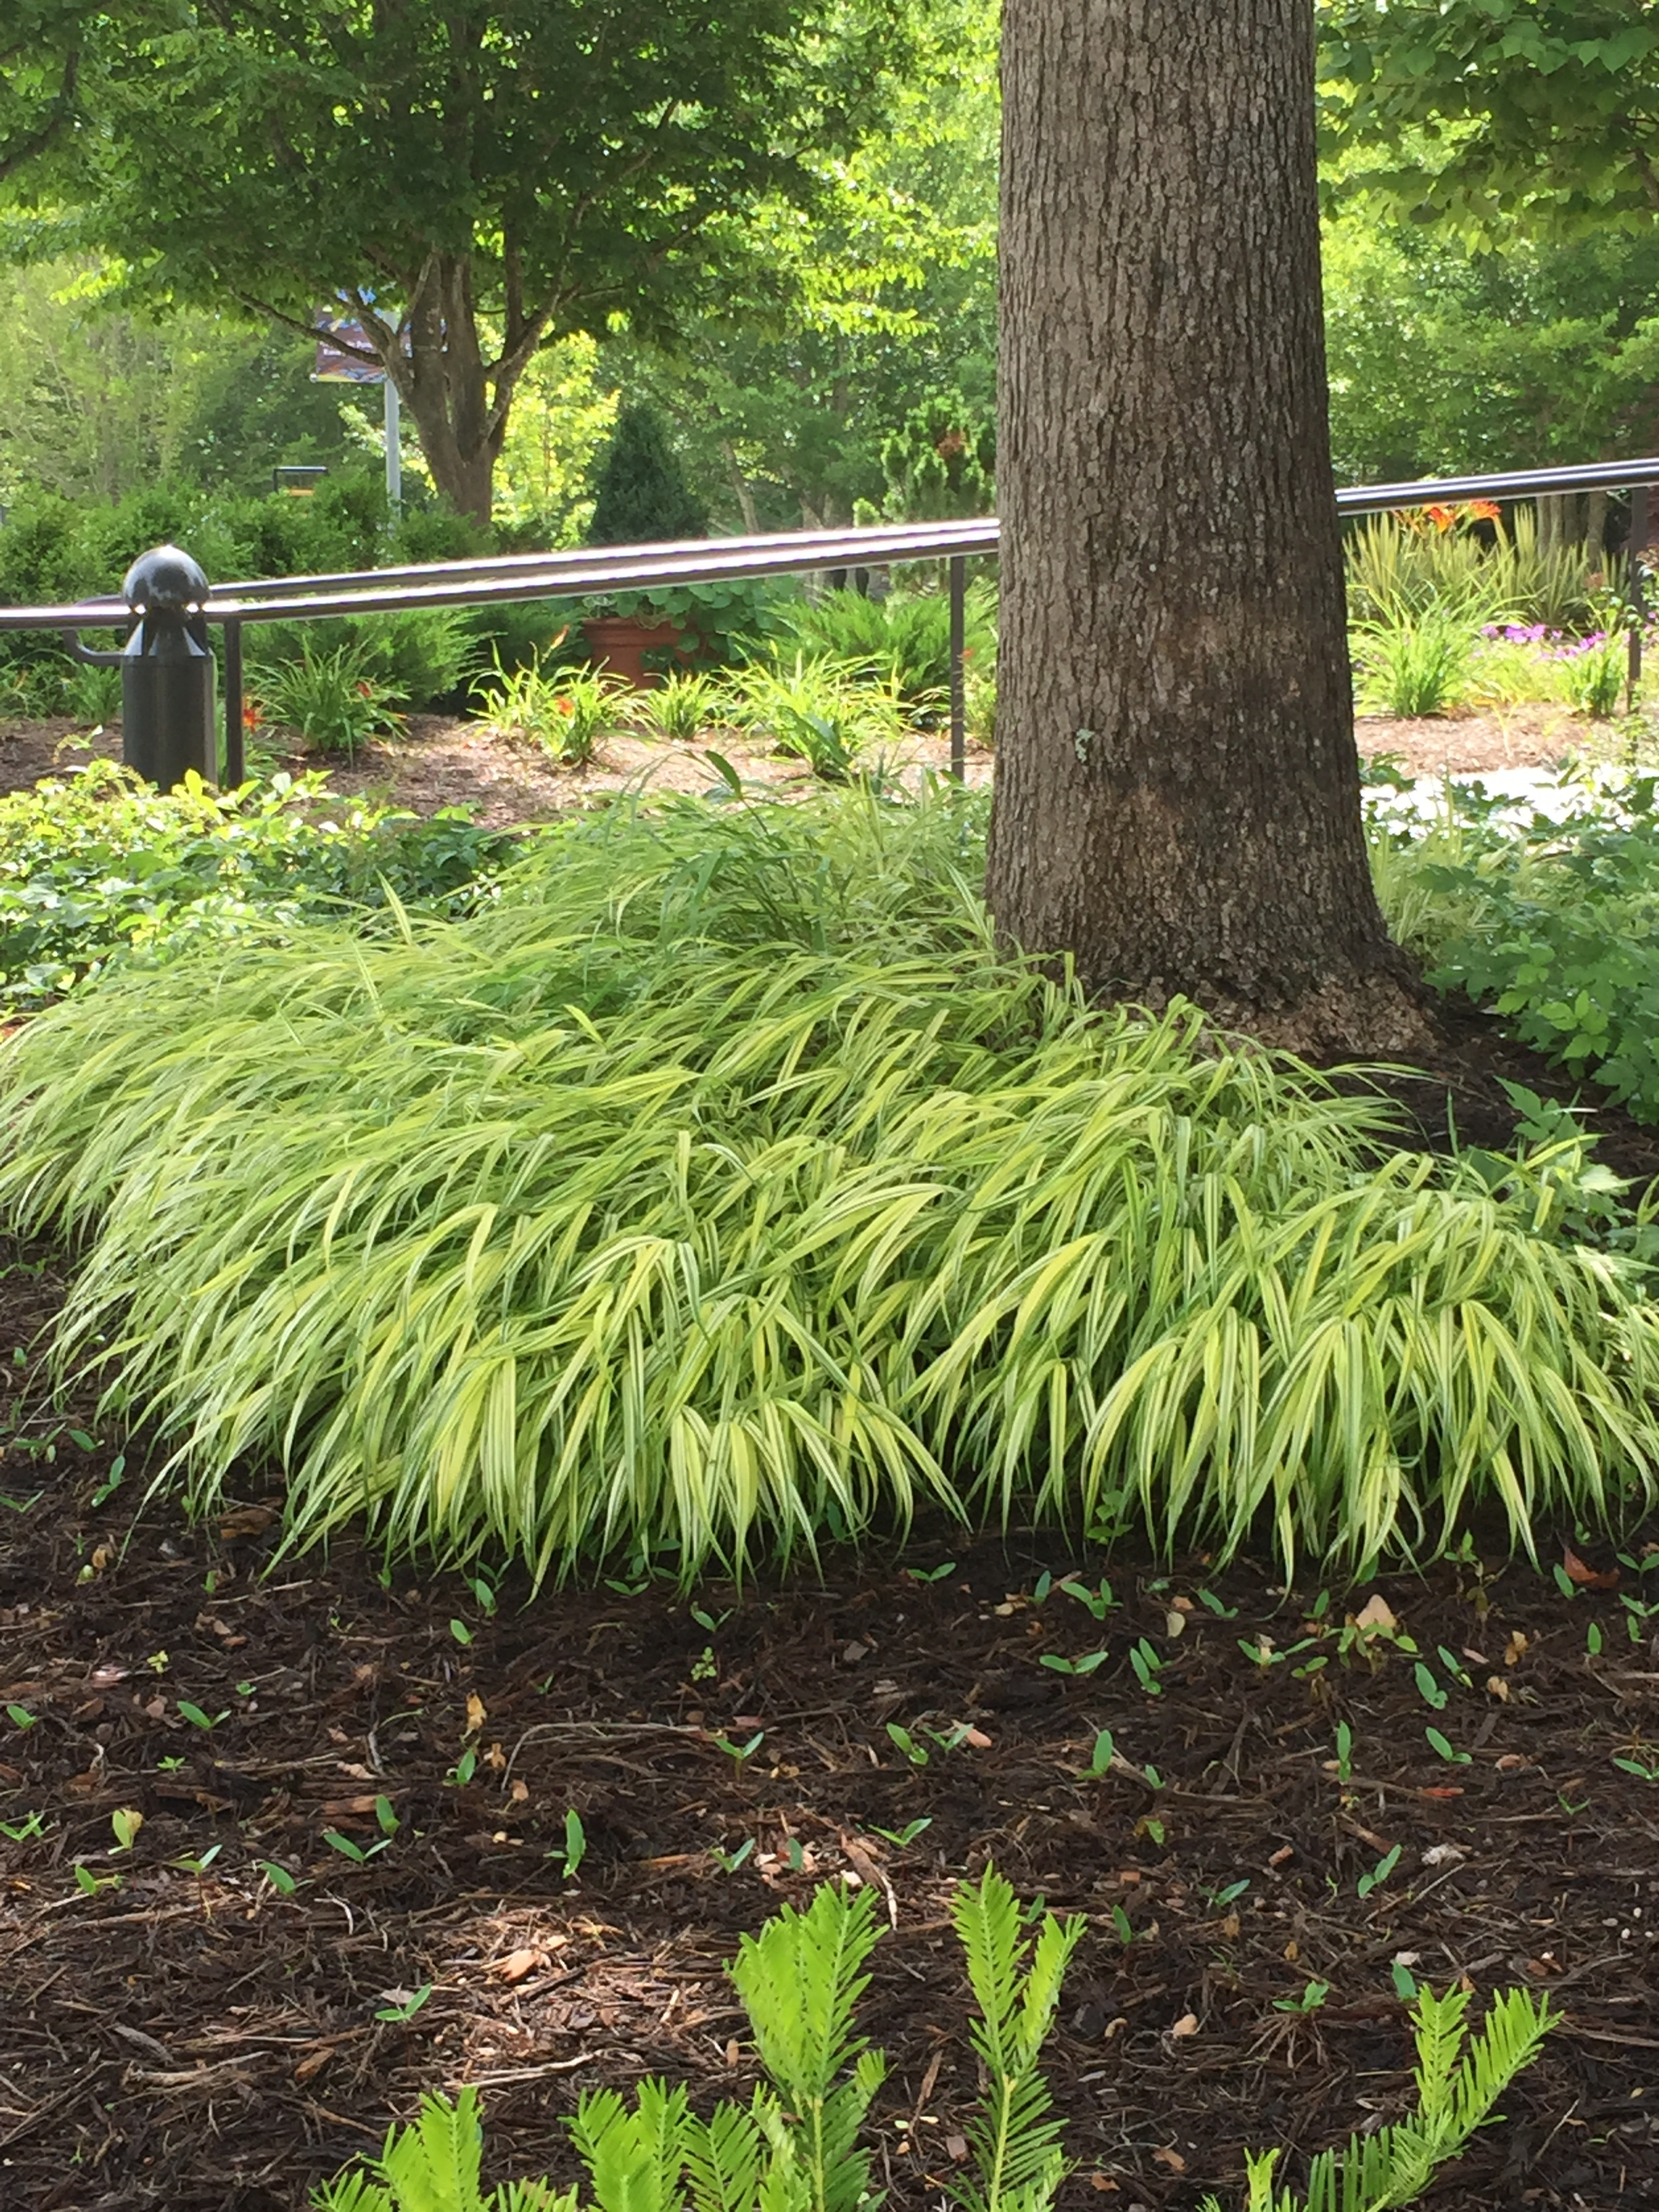 Japanese forest grass as a living mulch in shade.